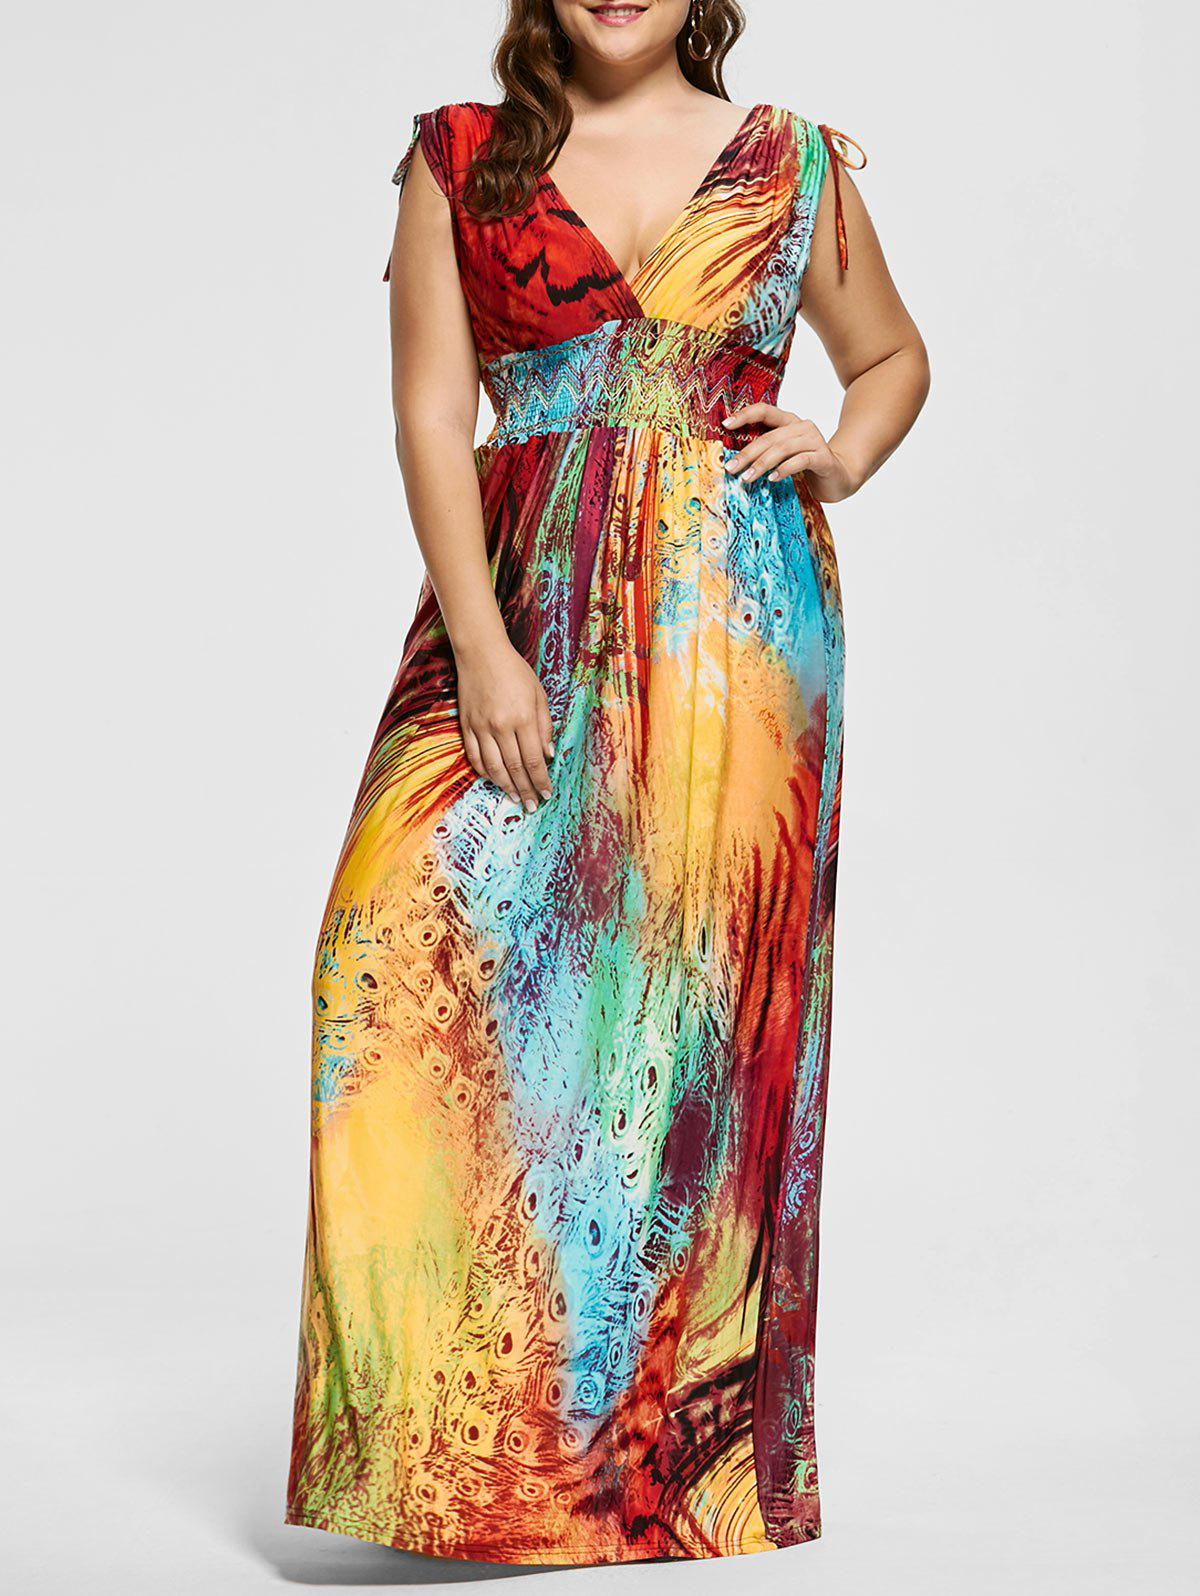 Floor Length Plunging Neck Printed Plus Size DressWOMEN<br><br>Size: 3XL; Color: MULTICOLOR; Style: Cute; Material: Polyester; Silhouette: A-Line; Dresses Length: Floor-Length; Neckline: Plunging Neck; Sleeve Length: Sleeveless; Pattern Type: Print; With Belt: No; Season: Summer; Weight: 0.5200kg; Package Contents: 1 x Dress;